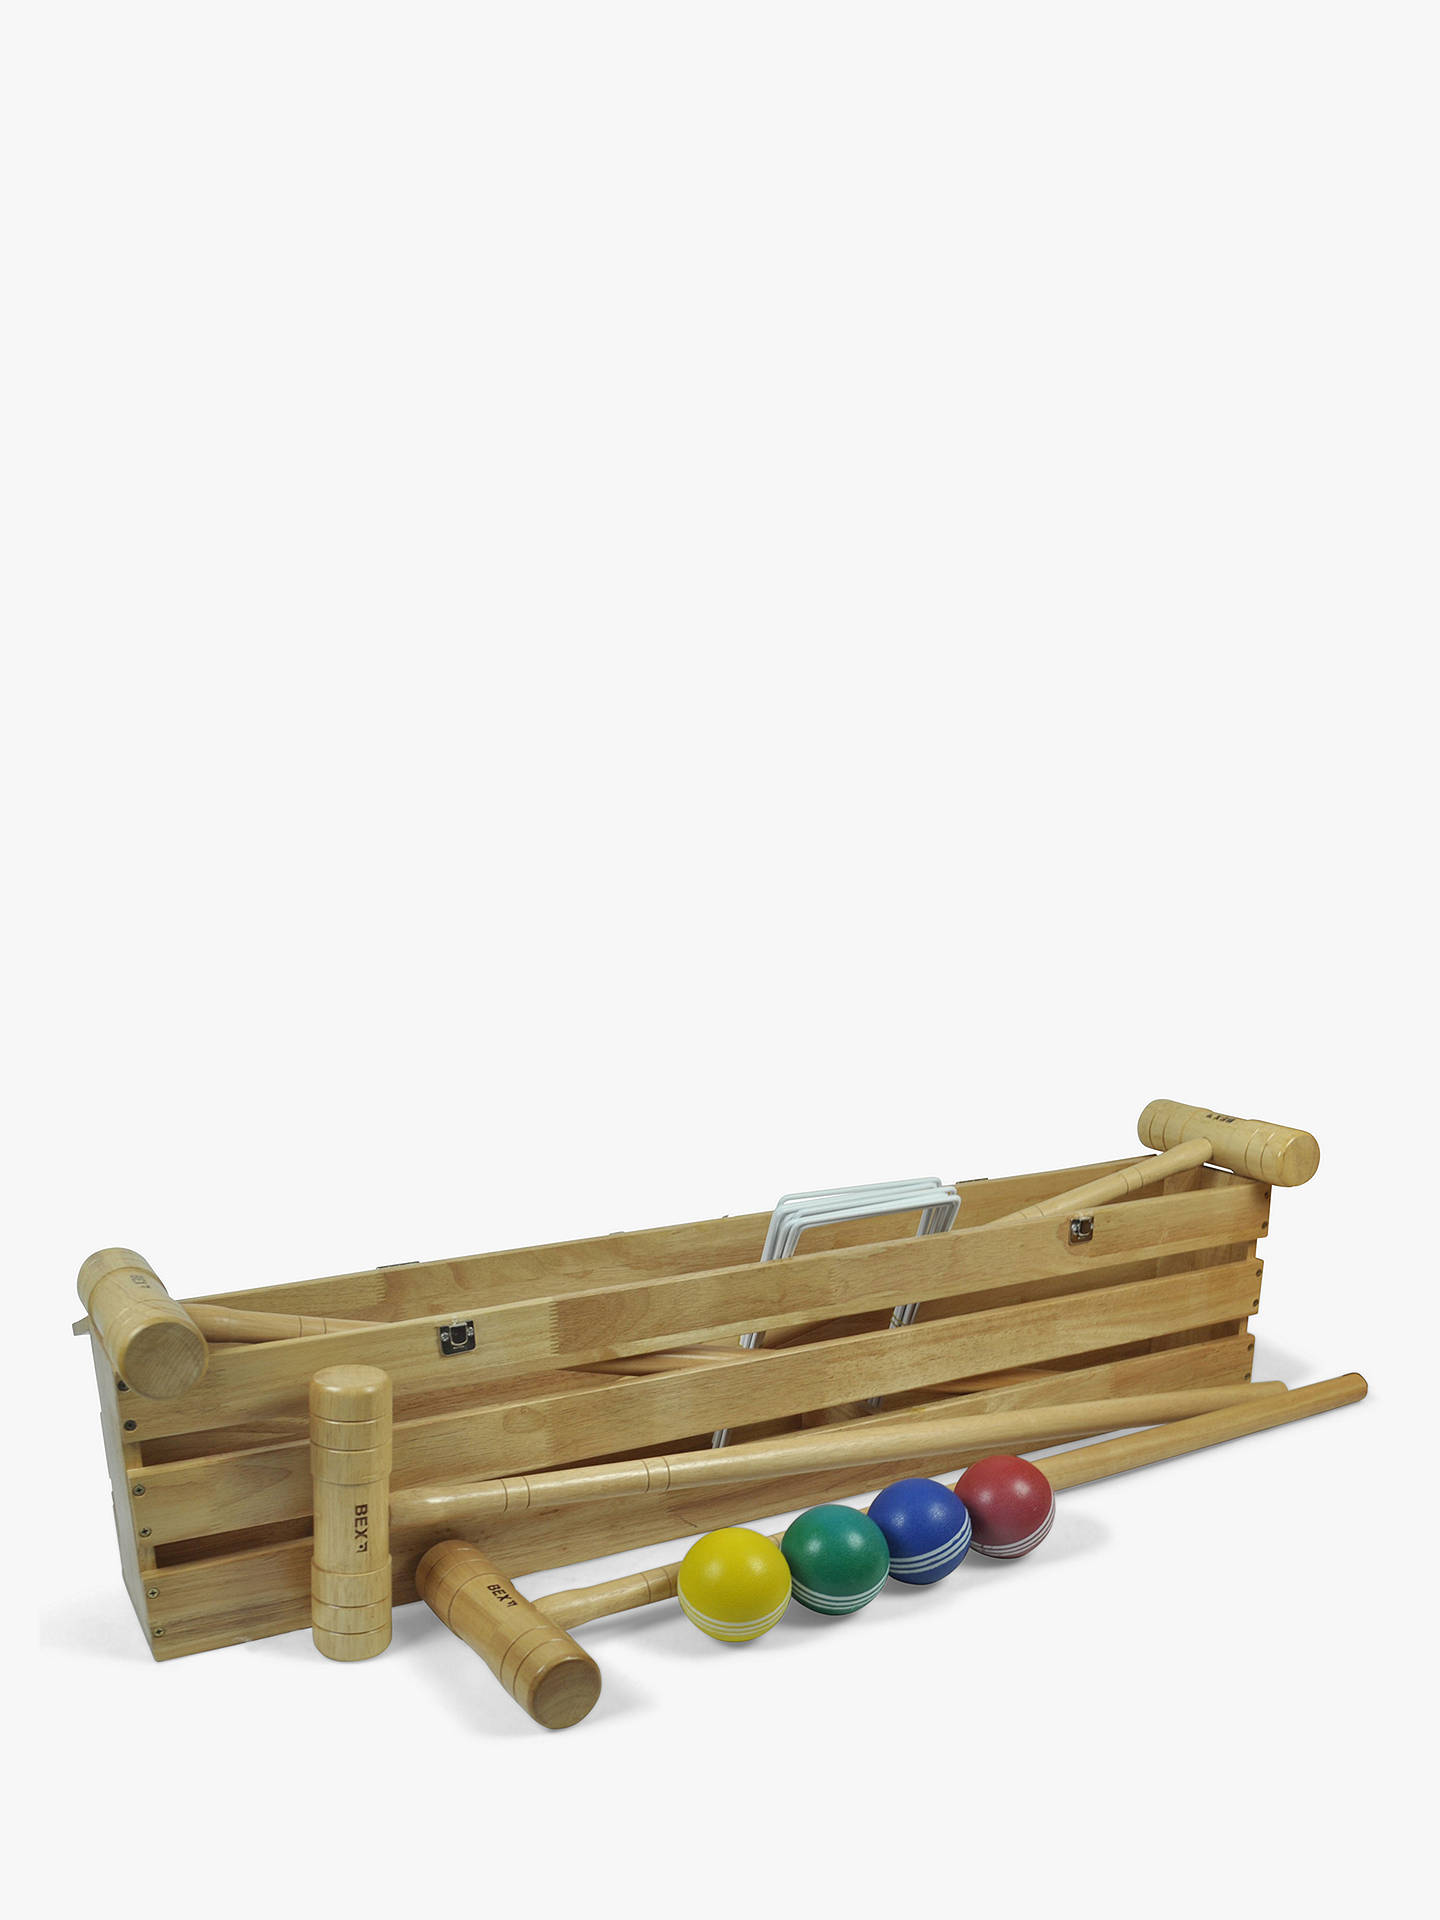 BuyBex Croquet Pro Game in a Wooden Box Online at johnlewis.com